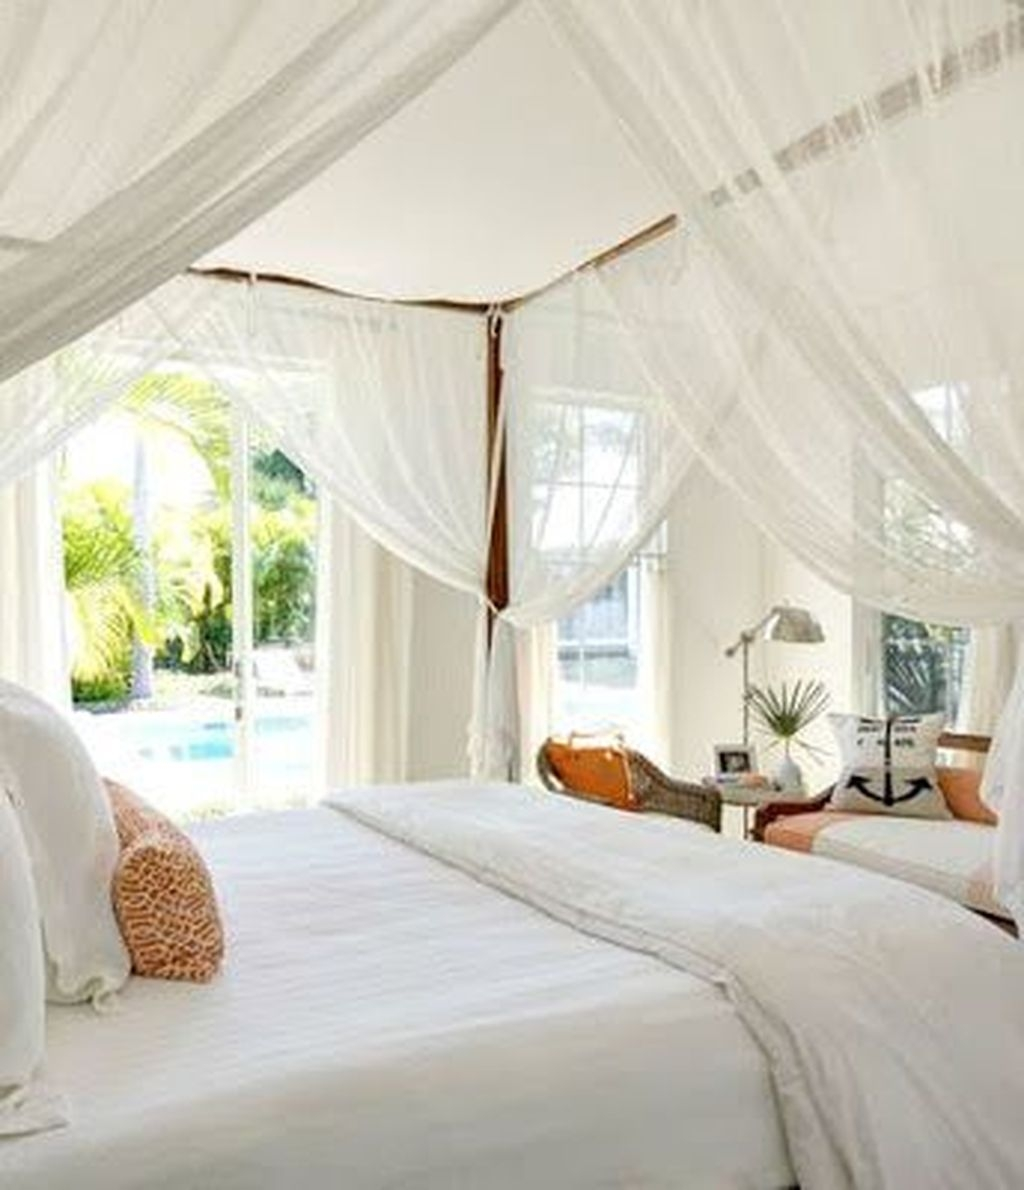 Romantic Bedroom With Canopy Beds 01